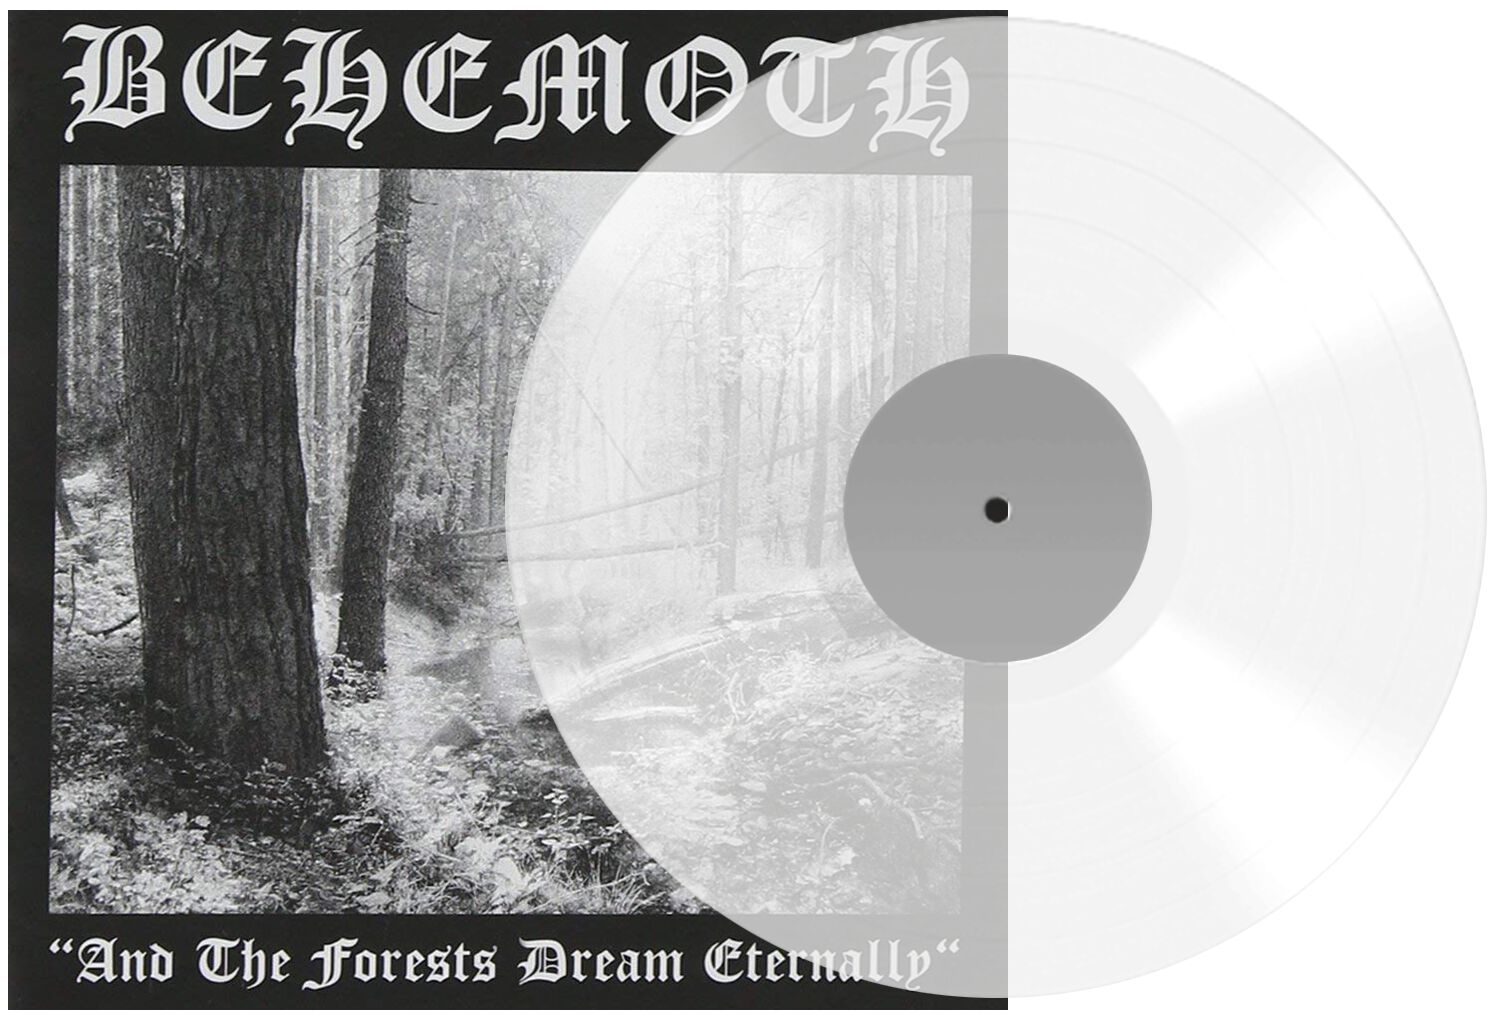 Image of Behemoth And the forests dream eternally EP klar